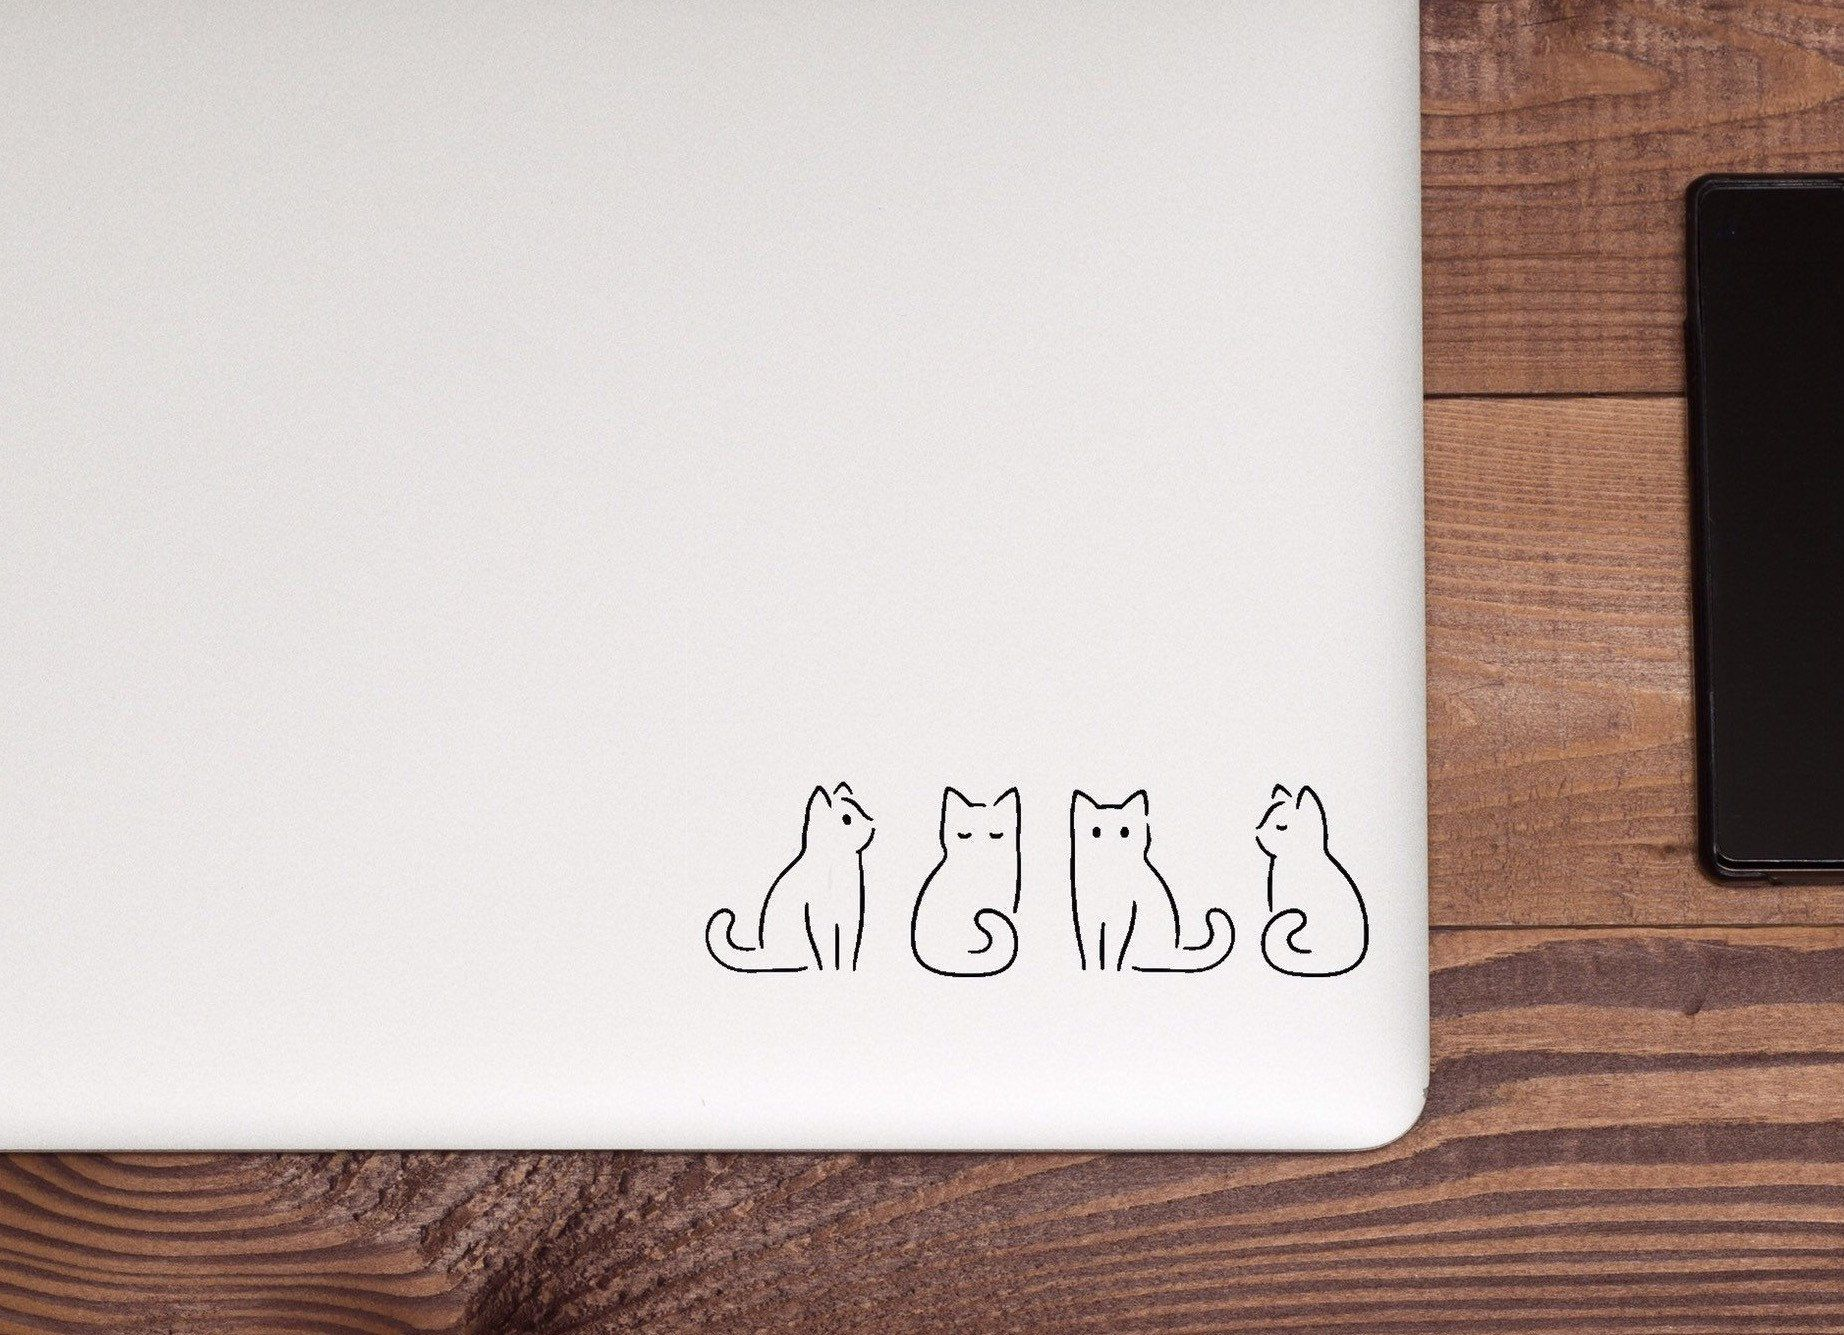 A Vinyl Decal With Some Very Small Cats Cat Lover Car Decal Etsy In 2021 Vinyl Decals Vinyl Sticker Laptop Stickers [ 1335 x 1844 Pixel ]